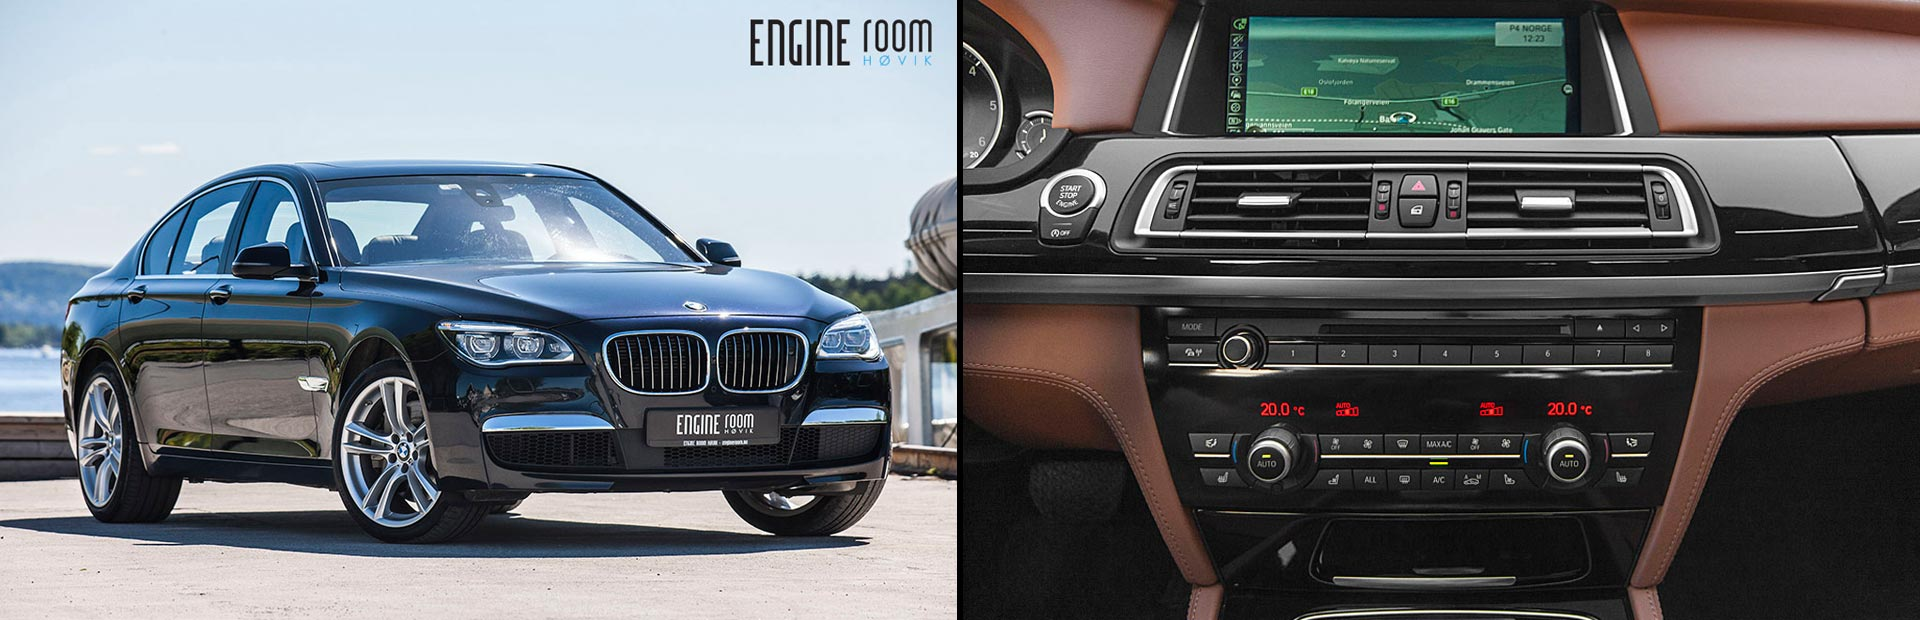 engineroom-bmw-750-sort